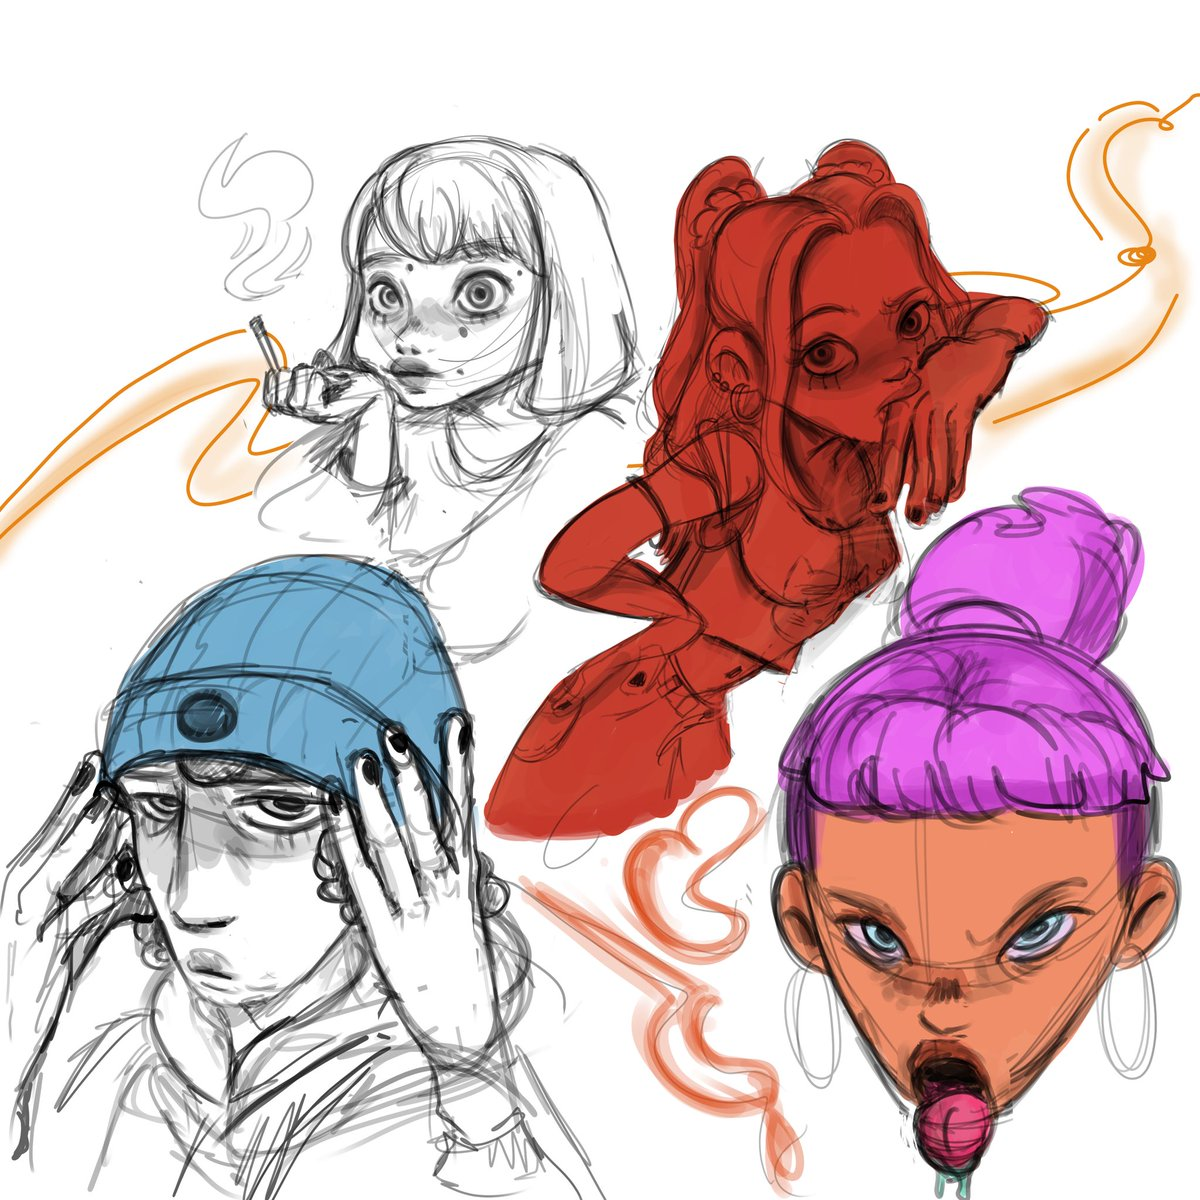 Sketchinnnnn!!  #animation #art #arte #Italy #characterart #sketch #sketchbook #conceptart #Colors #conceptartist #draw #drawing https://t.co/8bjyWP74nJ